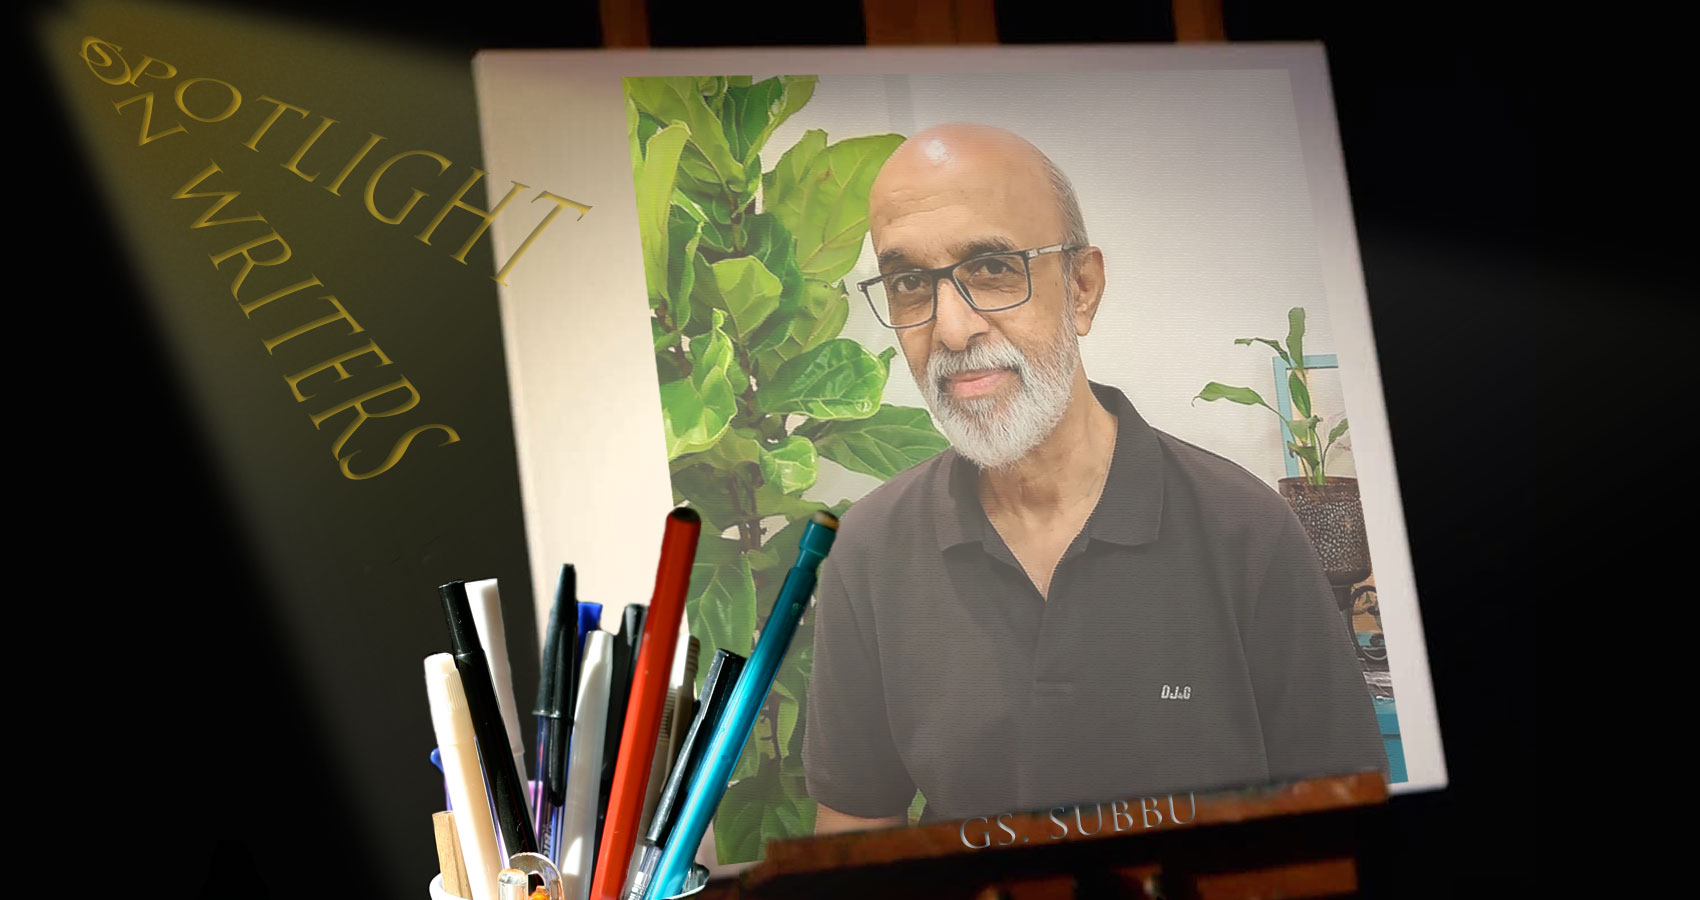 Spotlight On Writers - GS Subbu, interview at Spillwords.com